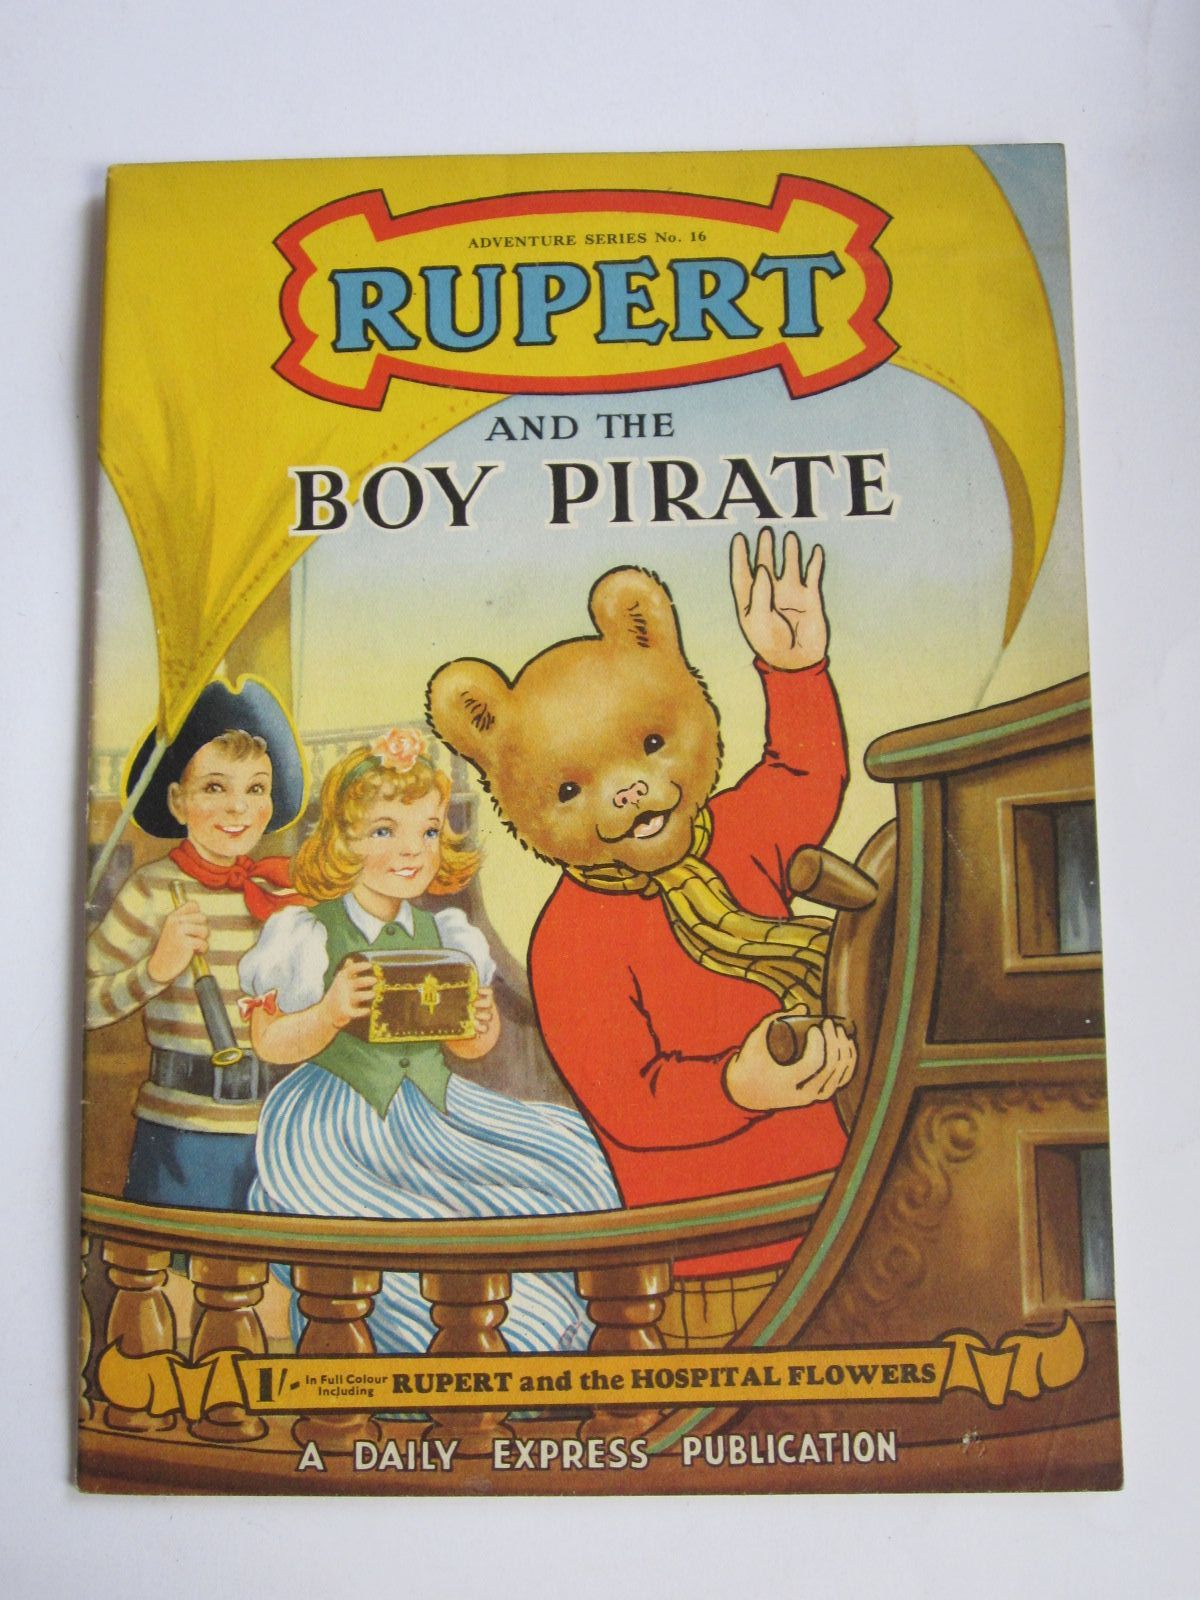 Photo of RUPERT ADVENTURE SERIES No. 16 - RUPERT AND THE BOY PIRATE written by Bestall, Alfred published by Daily Express (STOCK CODE: 1309071)  for sale by Stella & Rose's Books